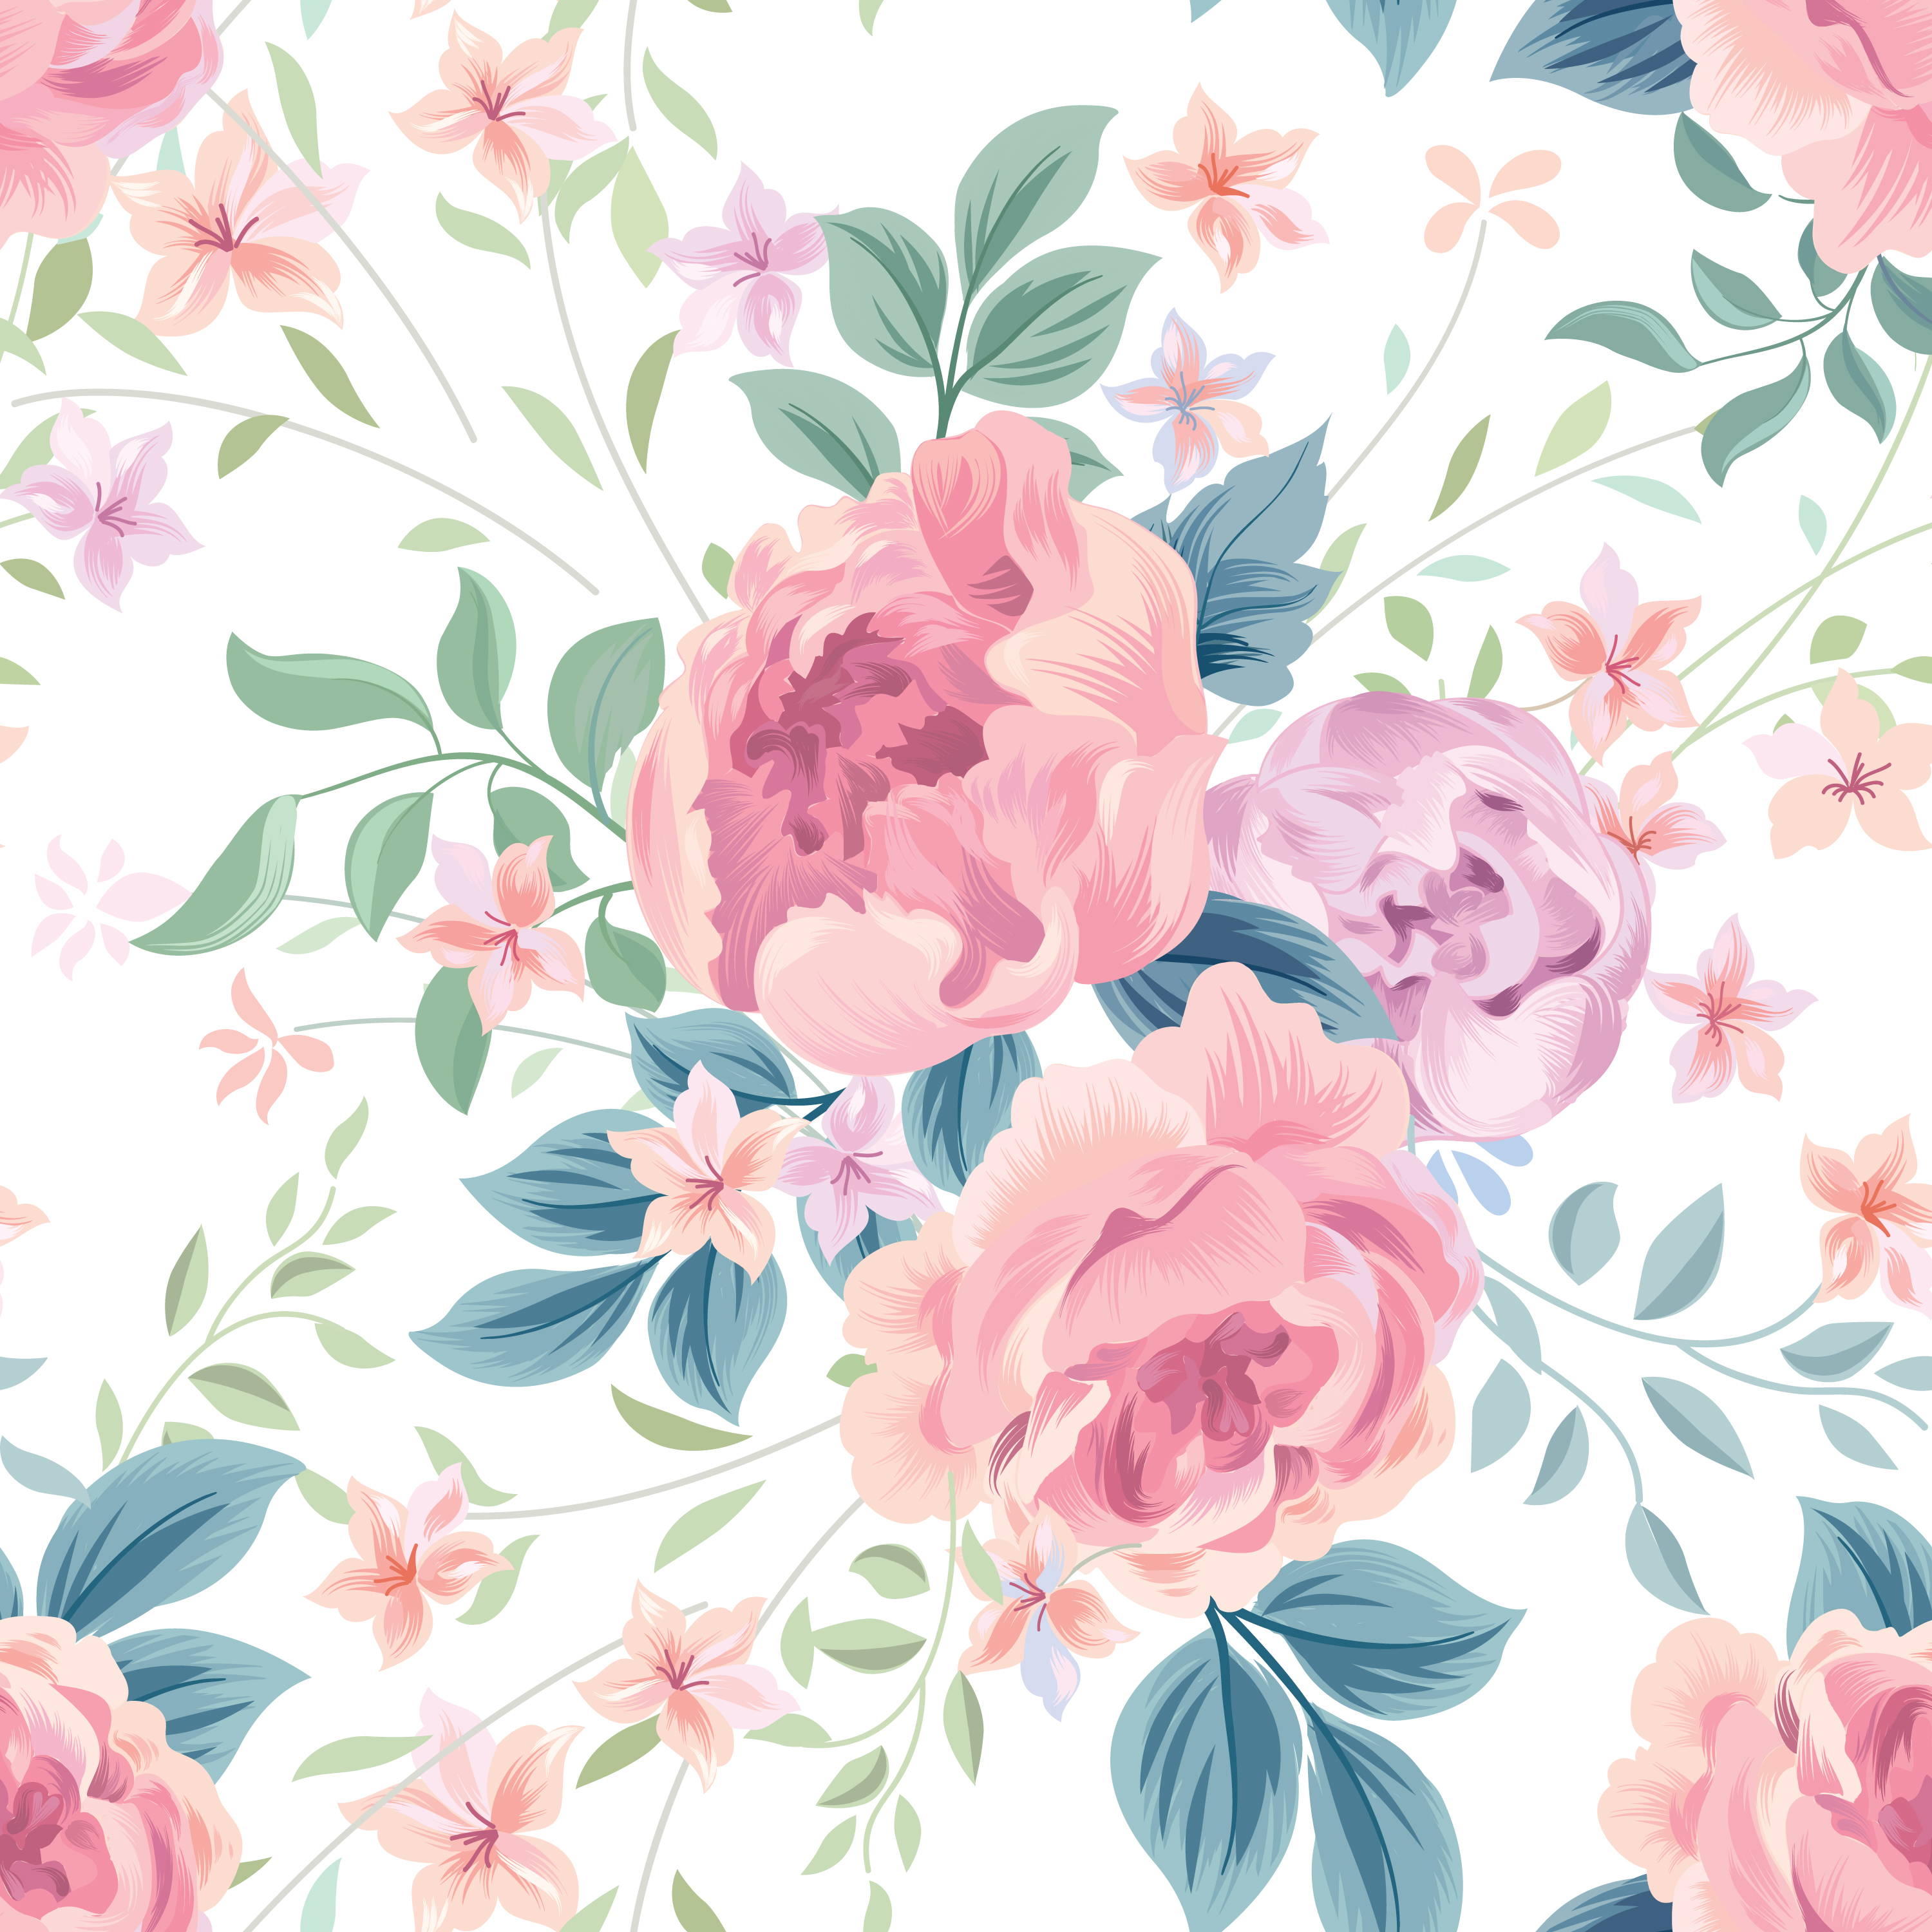 Floral Seamless Pattern Pastel Watercolor Floral Vector 2597536 Hd Wallpaper Backgrounds Download